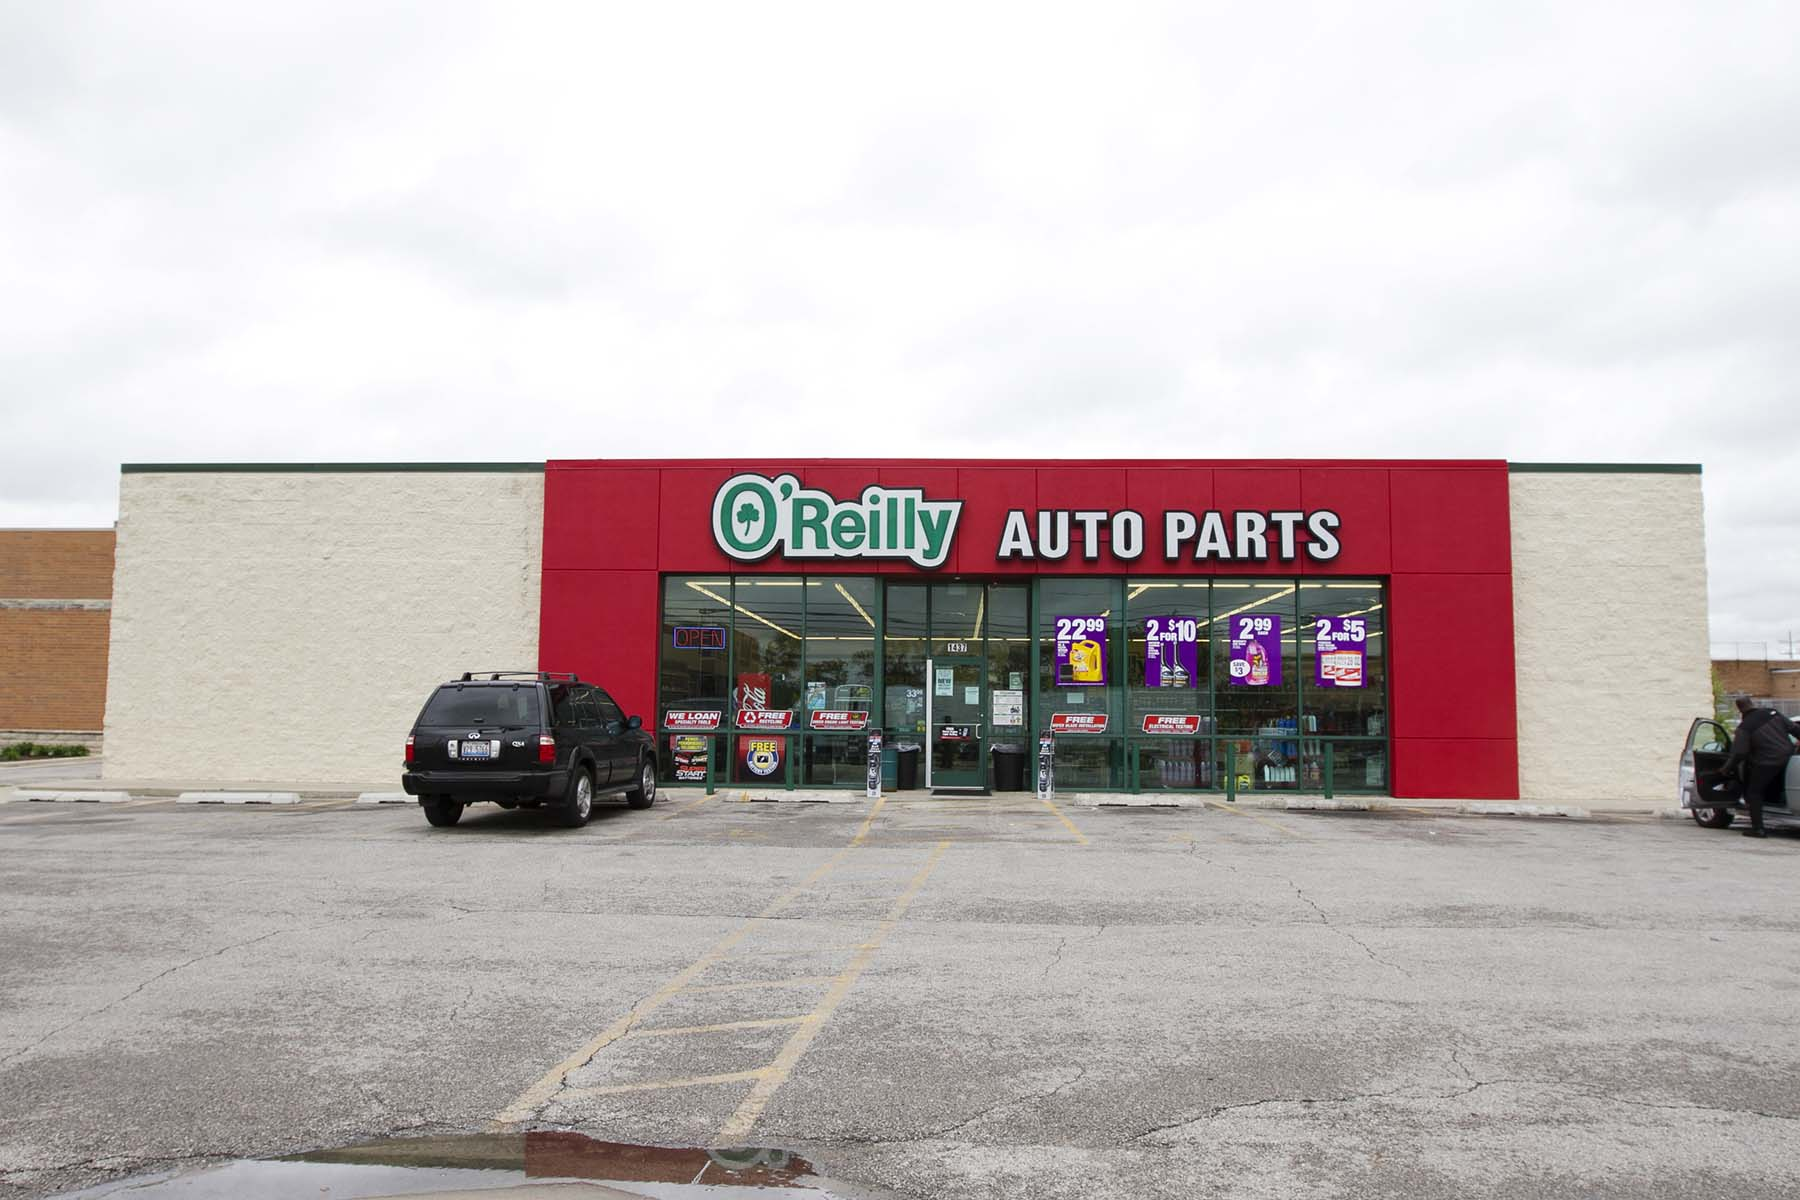 OReilly Autoparts